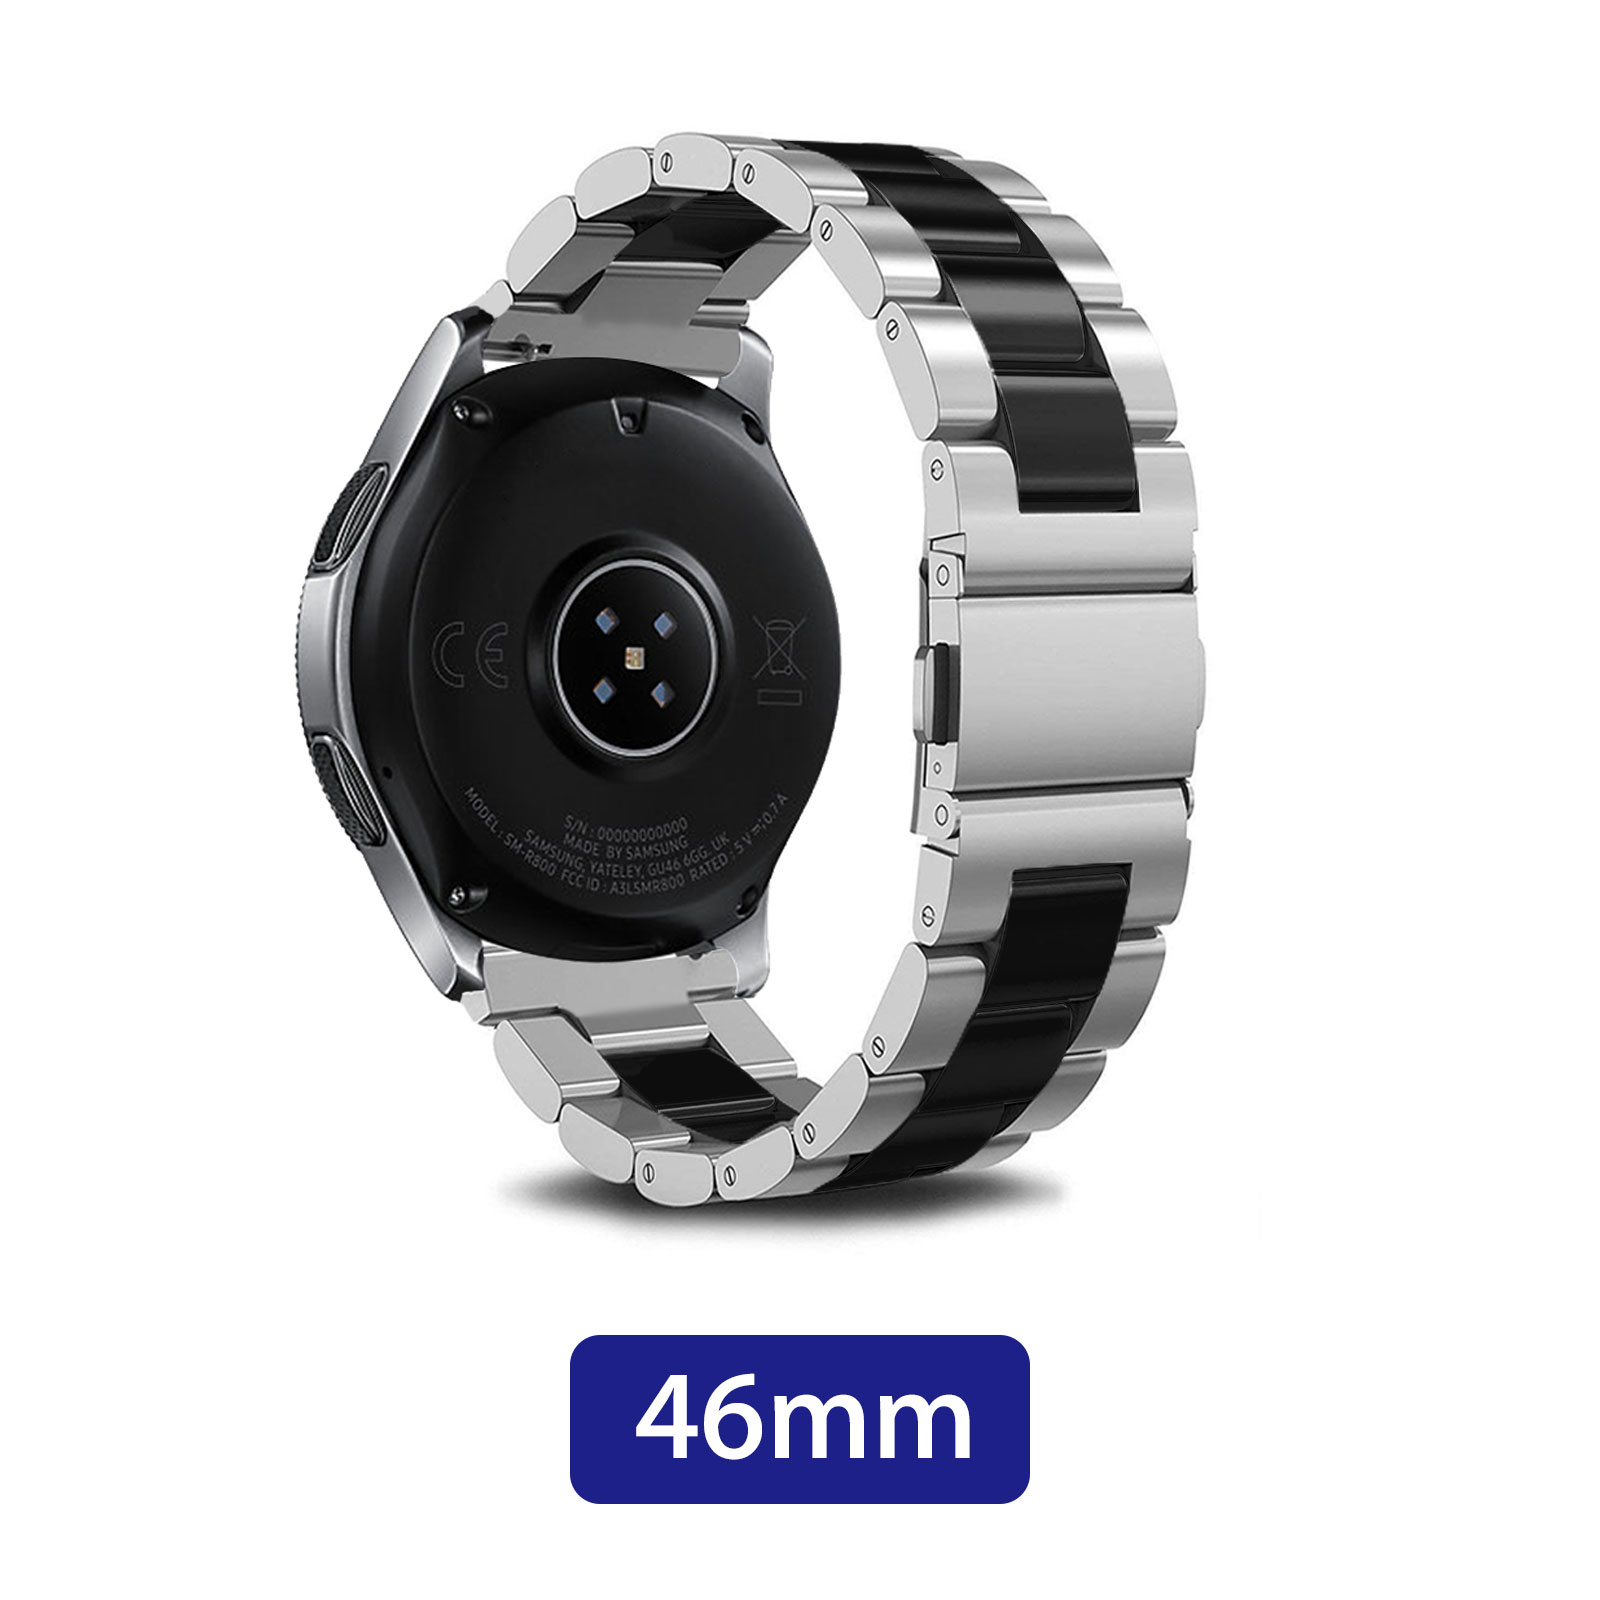 Replacement-Stainless-Steel-Watch-Band-Strap-For-Samsung-Galaxy-Watch-42mm-46mm thumbnail 12